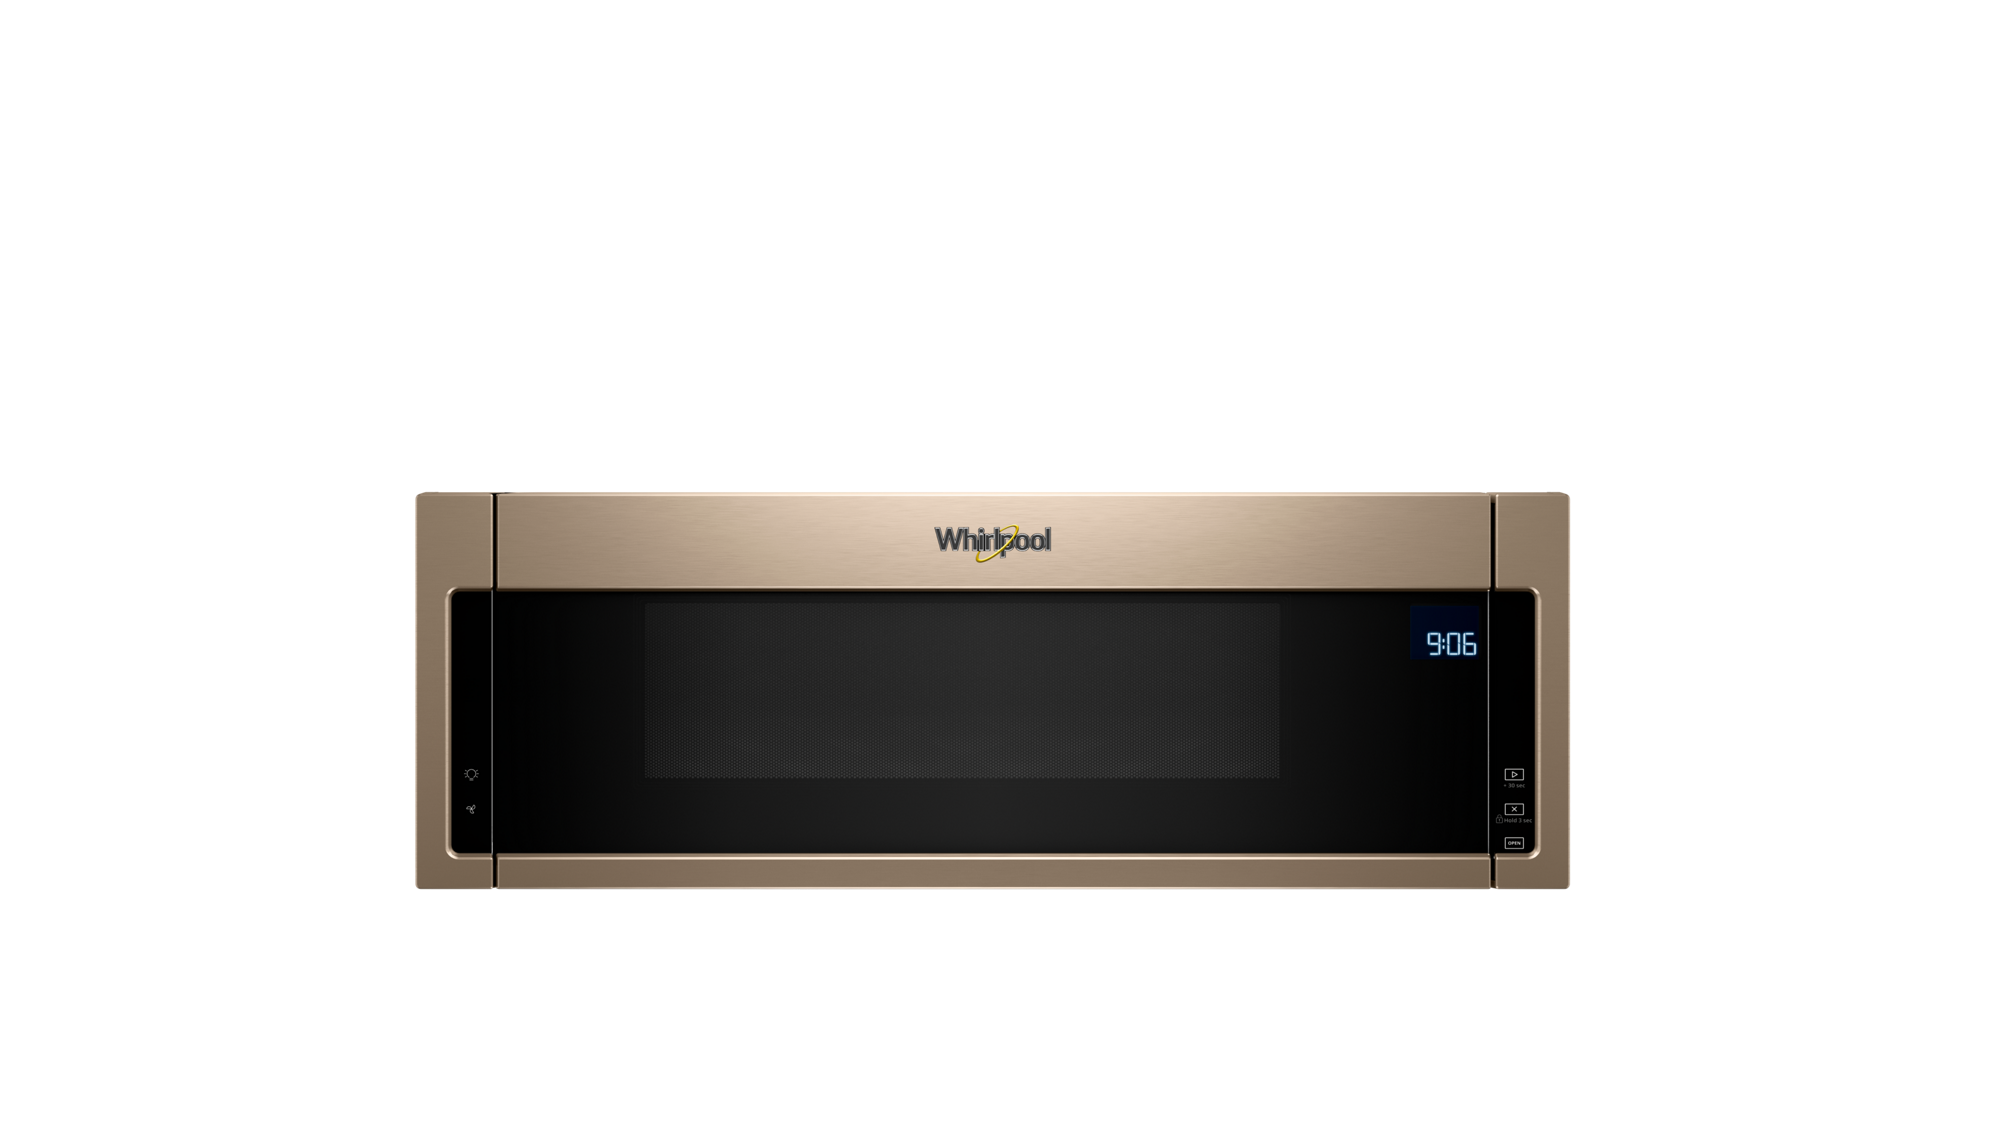 Learn more about Whirlpool's new space-saver microwave.